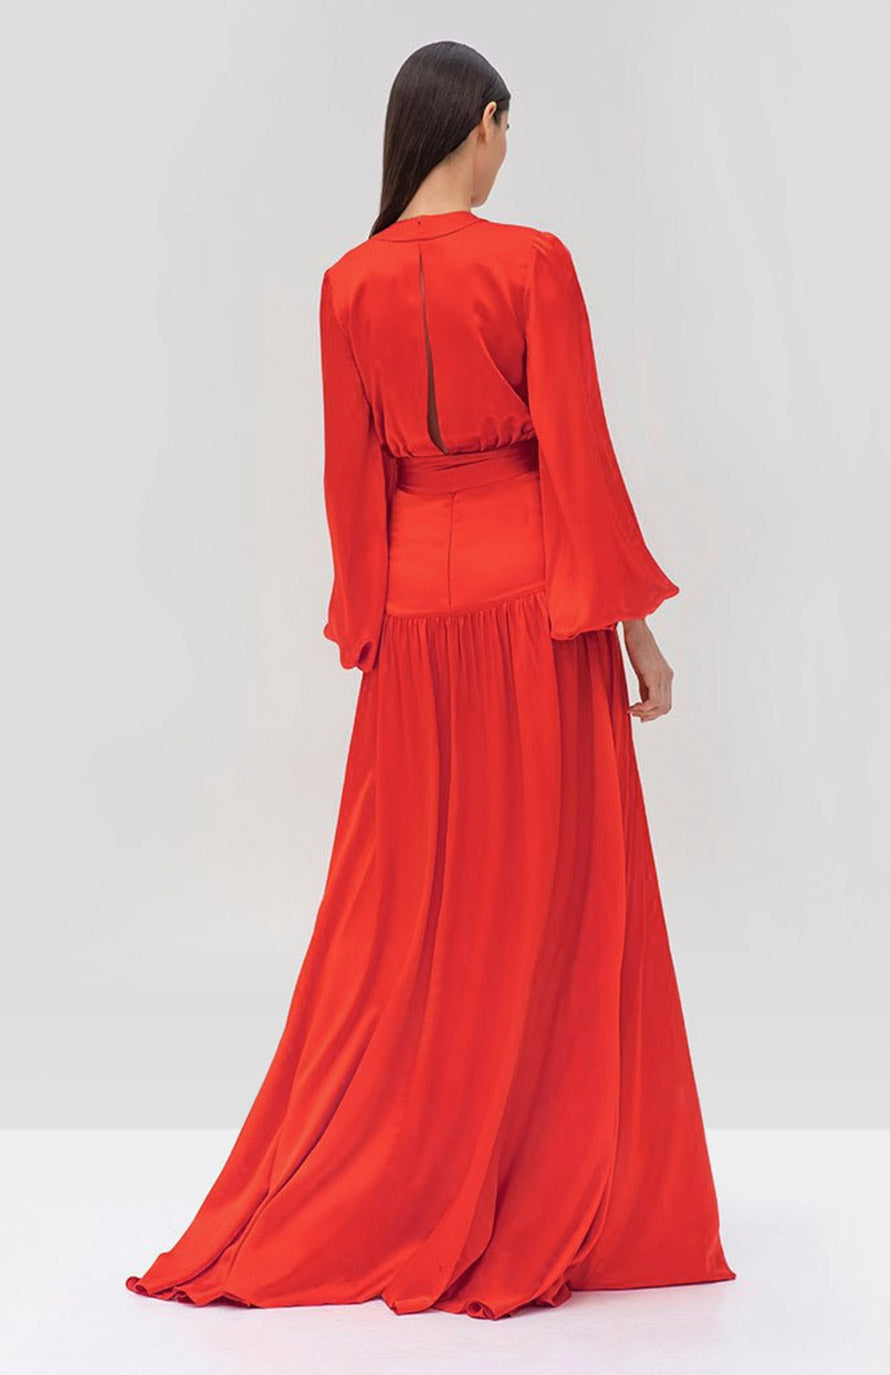 Alexis Modesta Dress in Red from the Pre Fall 2019 Ready To Wear Collection - Rear View